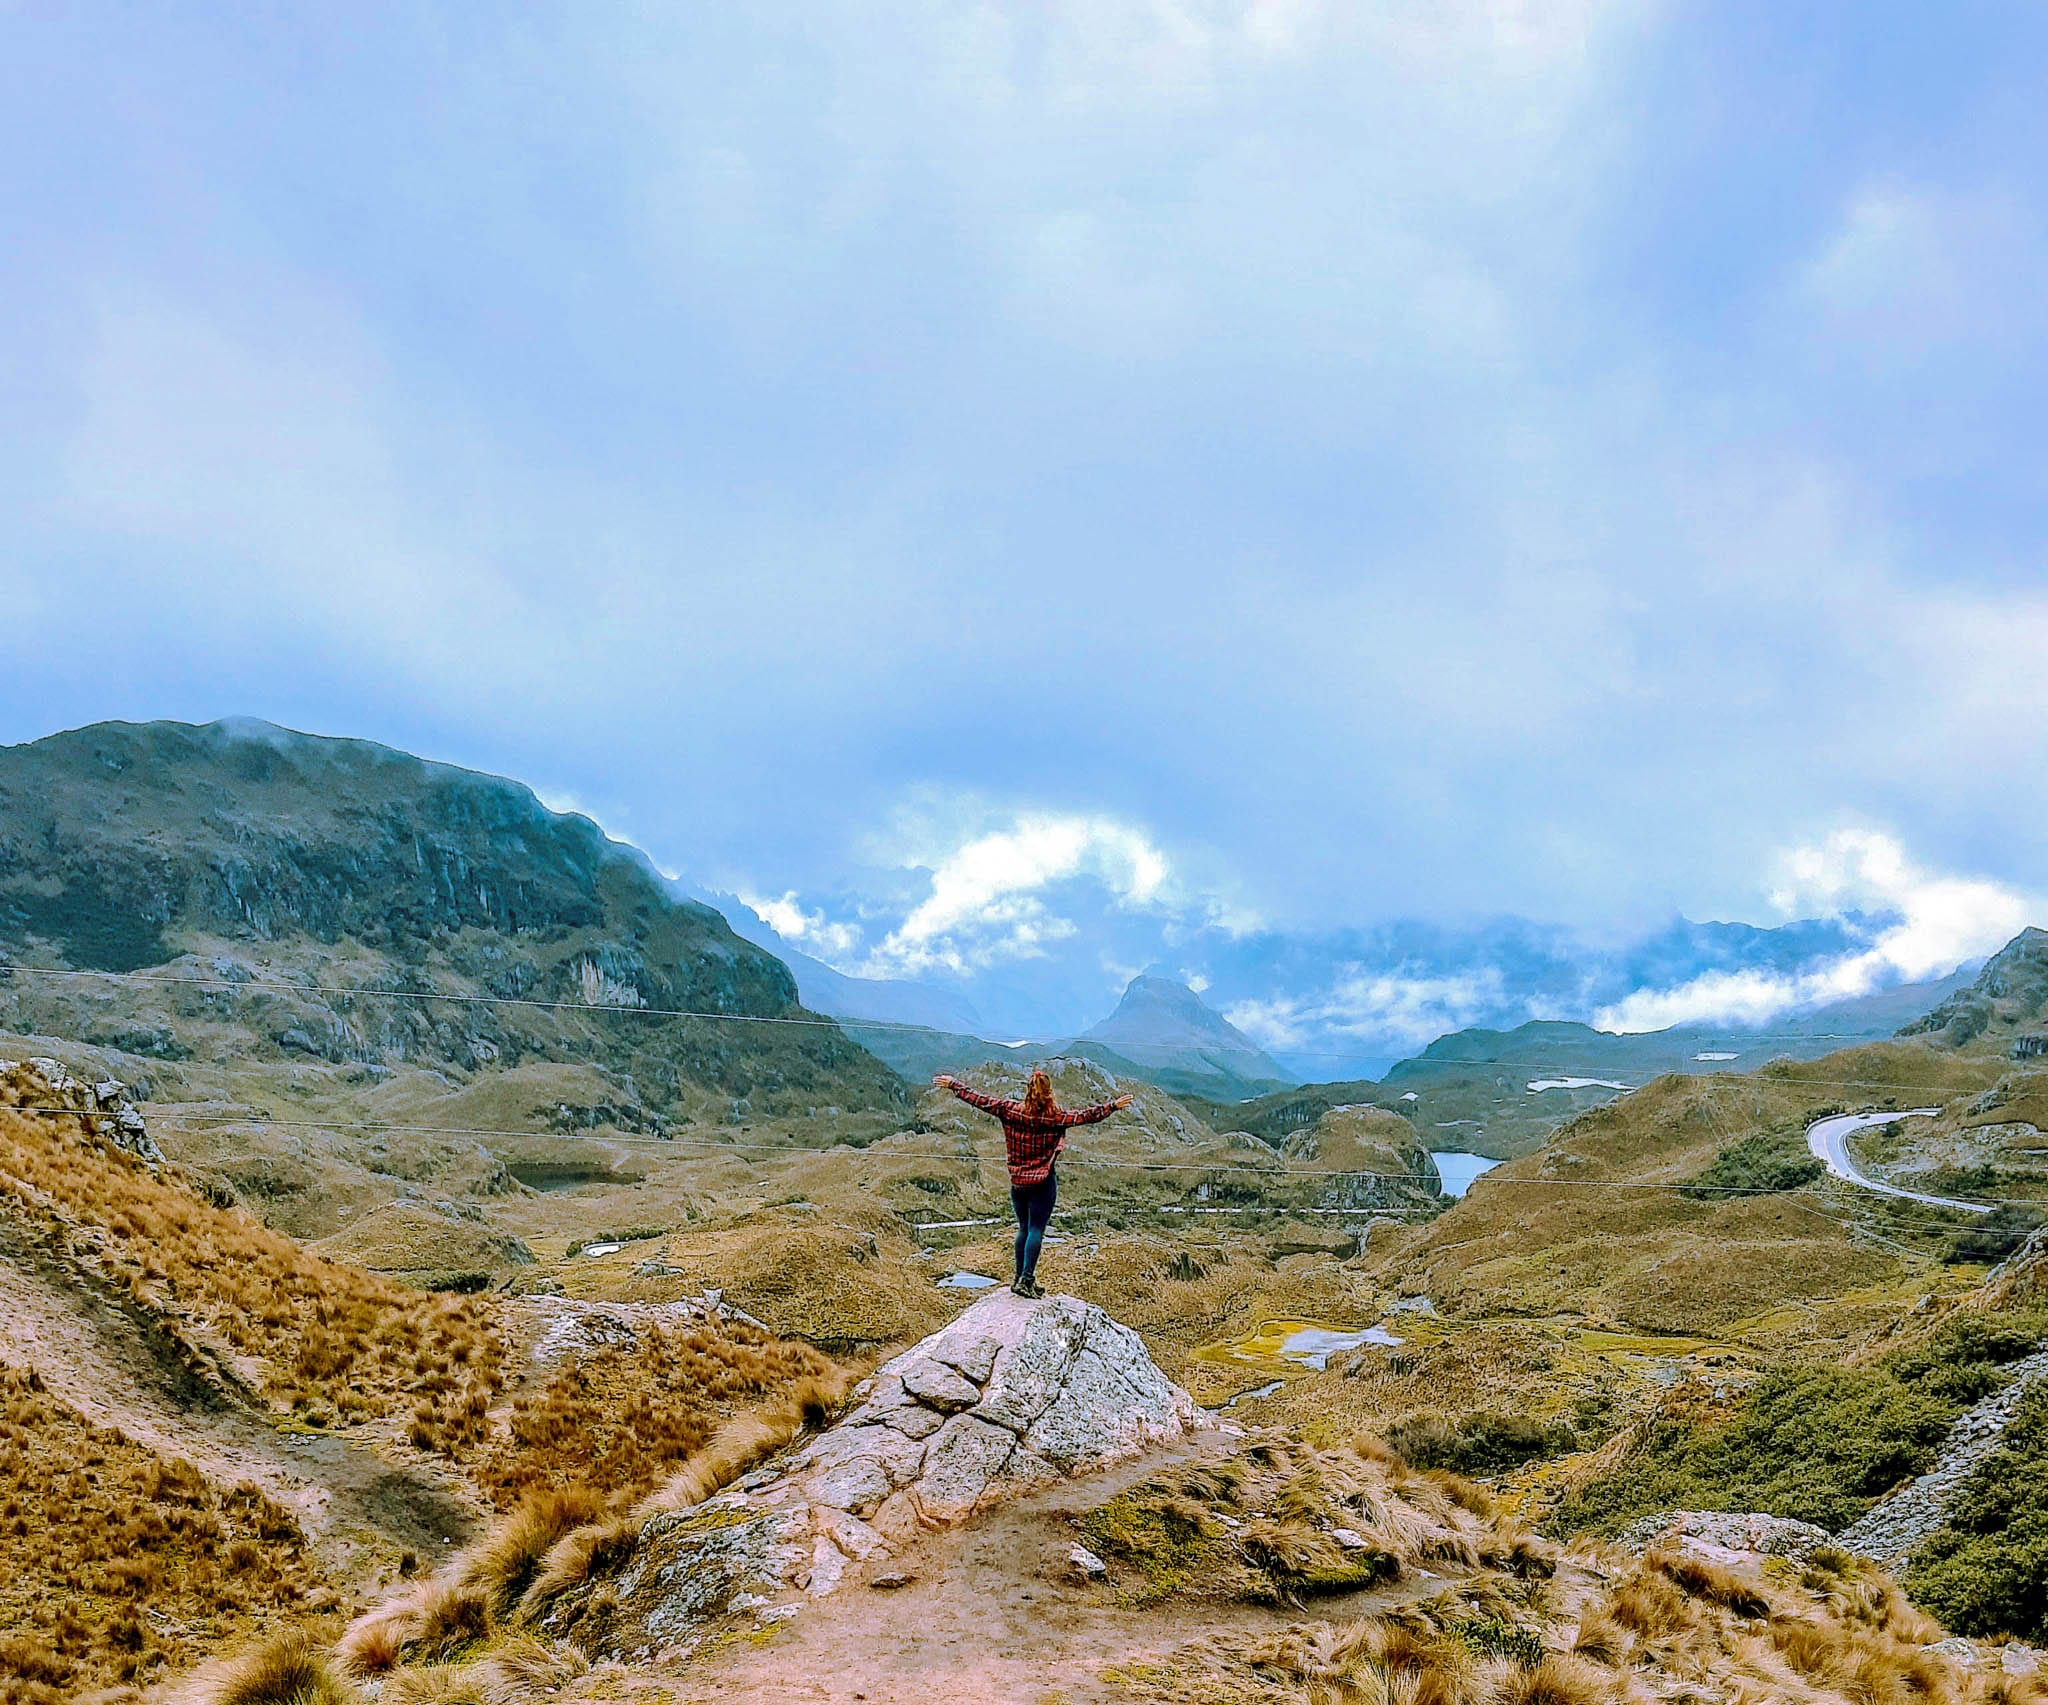 Cajas National Park – Best Day Trip from Cuenca, Ecuador